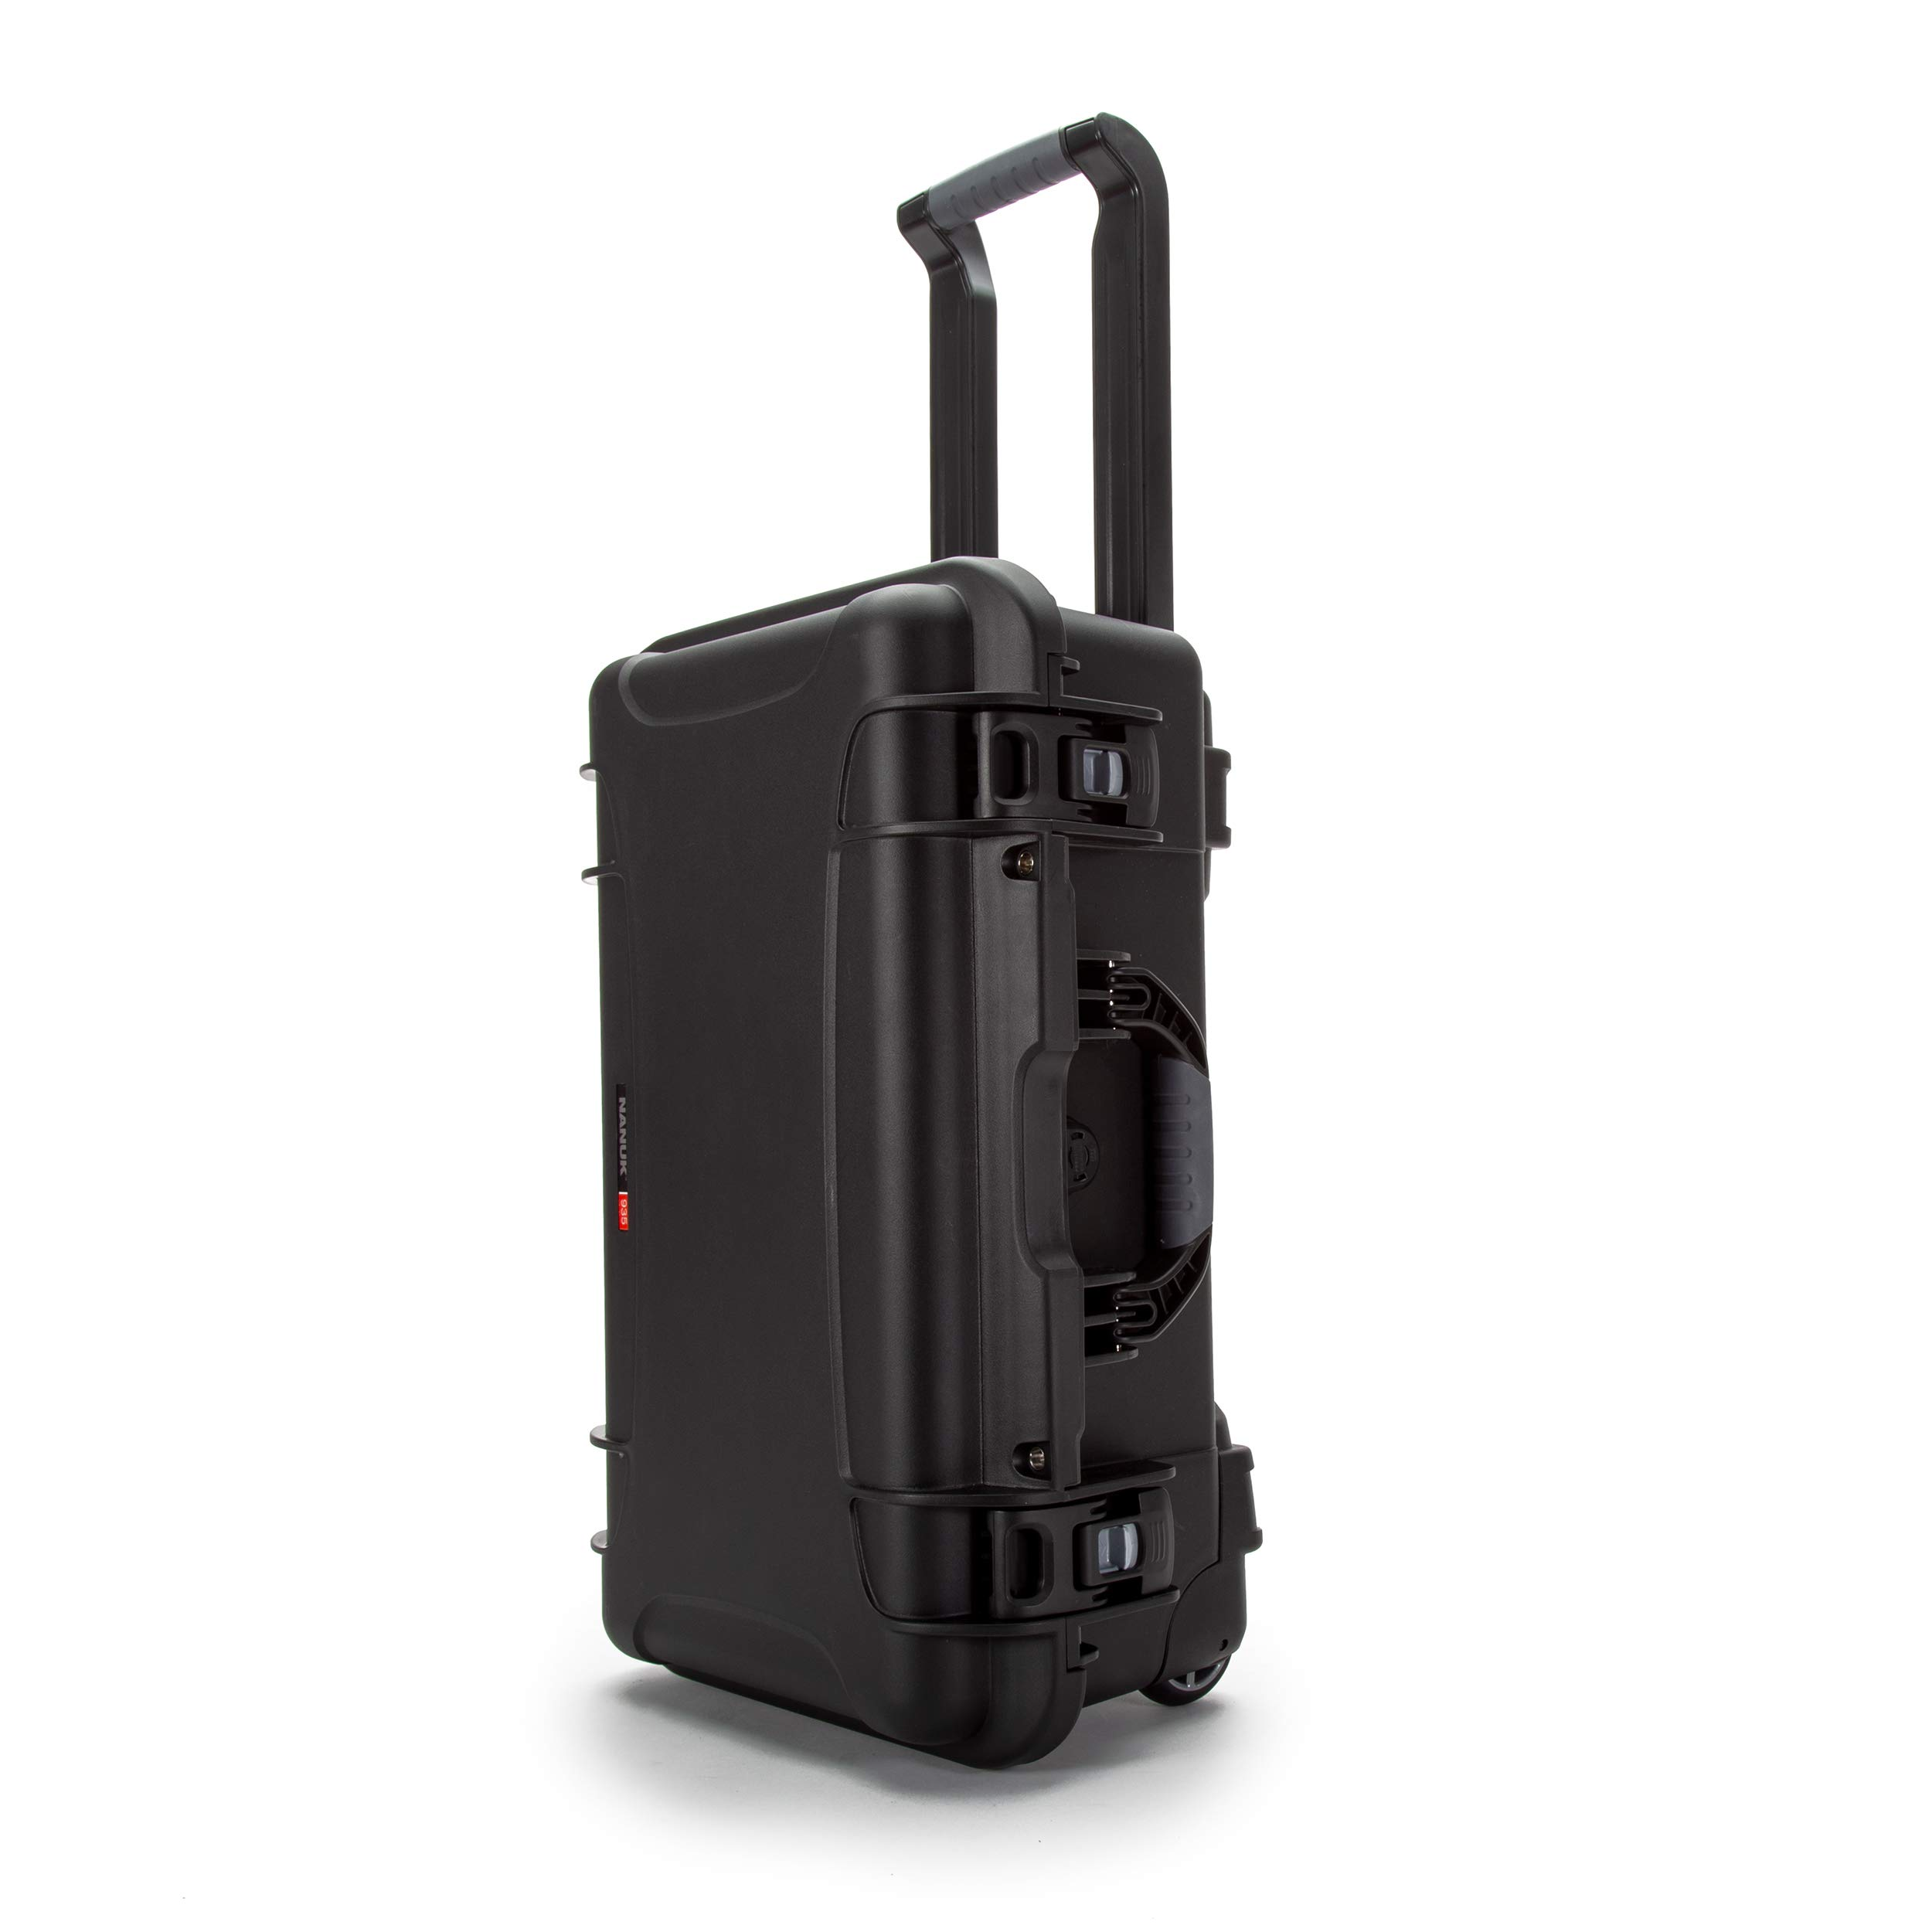 Nanuk 935 Waterproof Carry-On Hard Case with Wheels Empty - Black by Nanuk